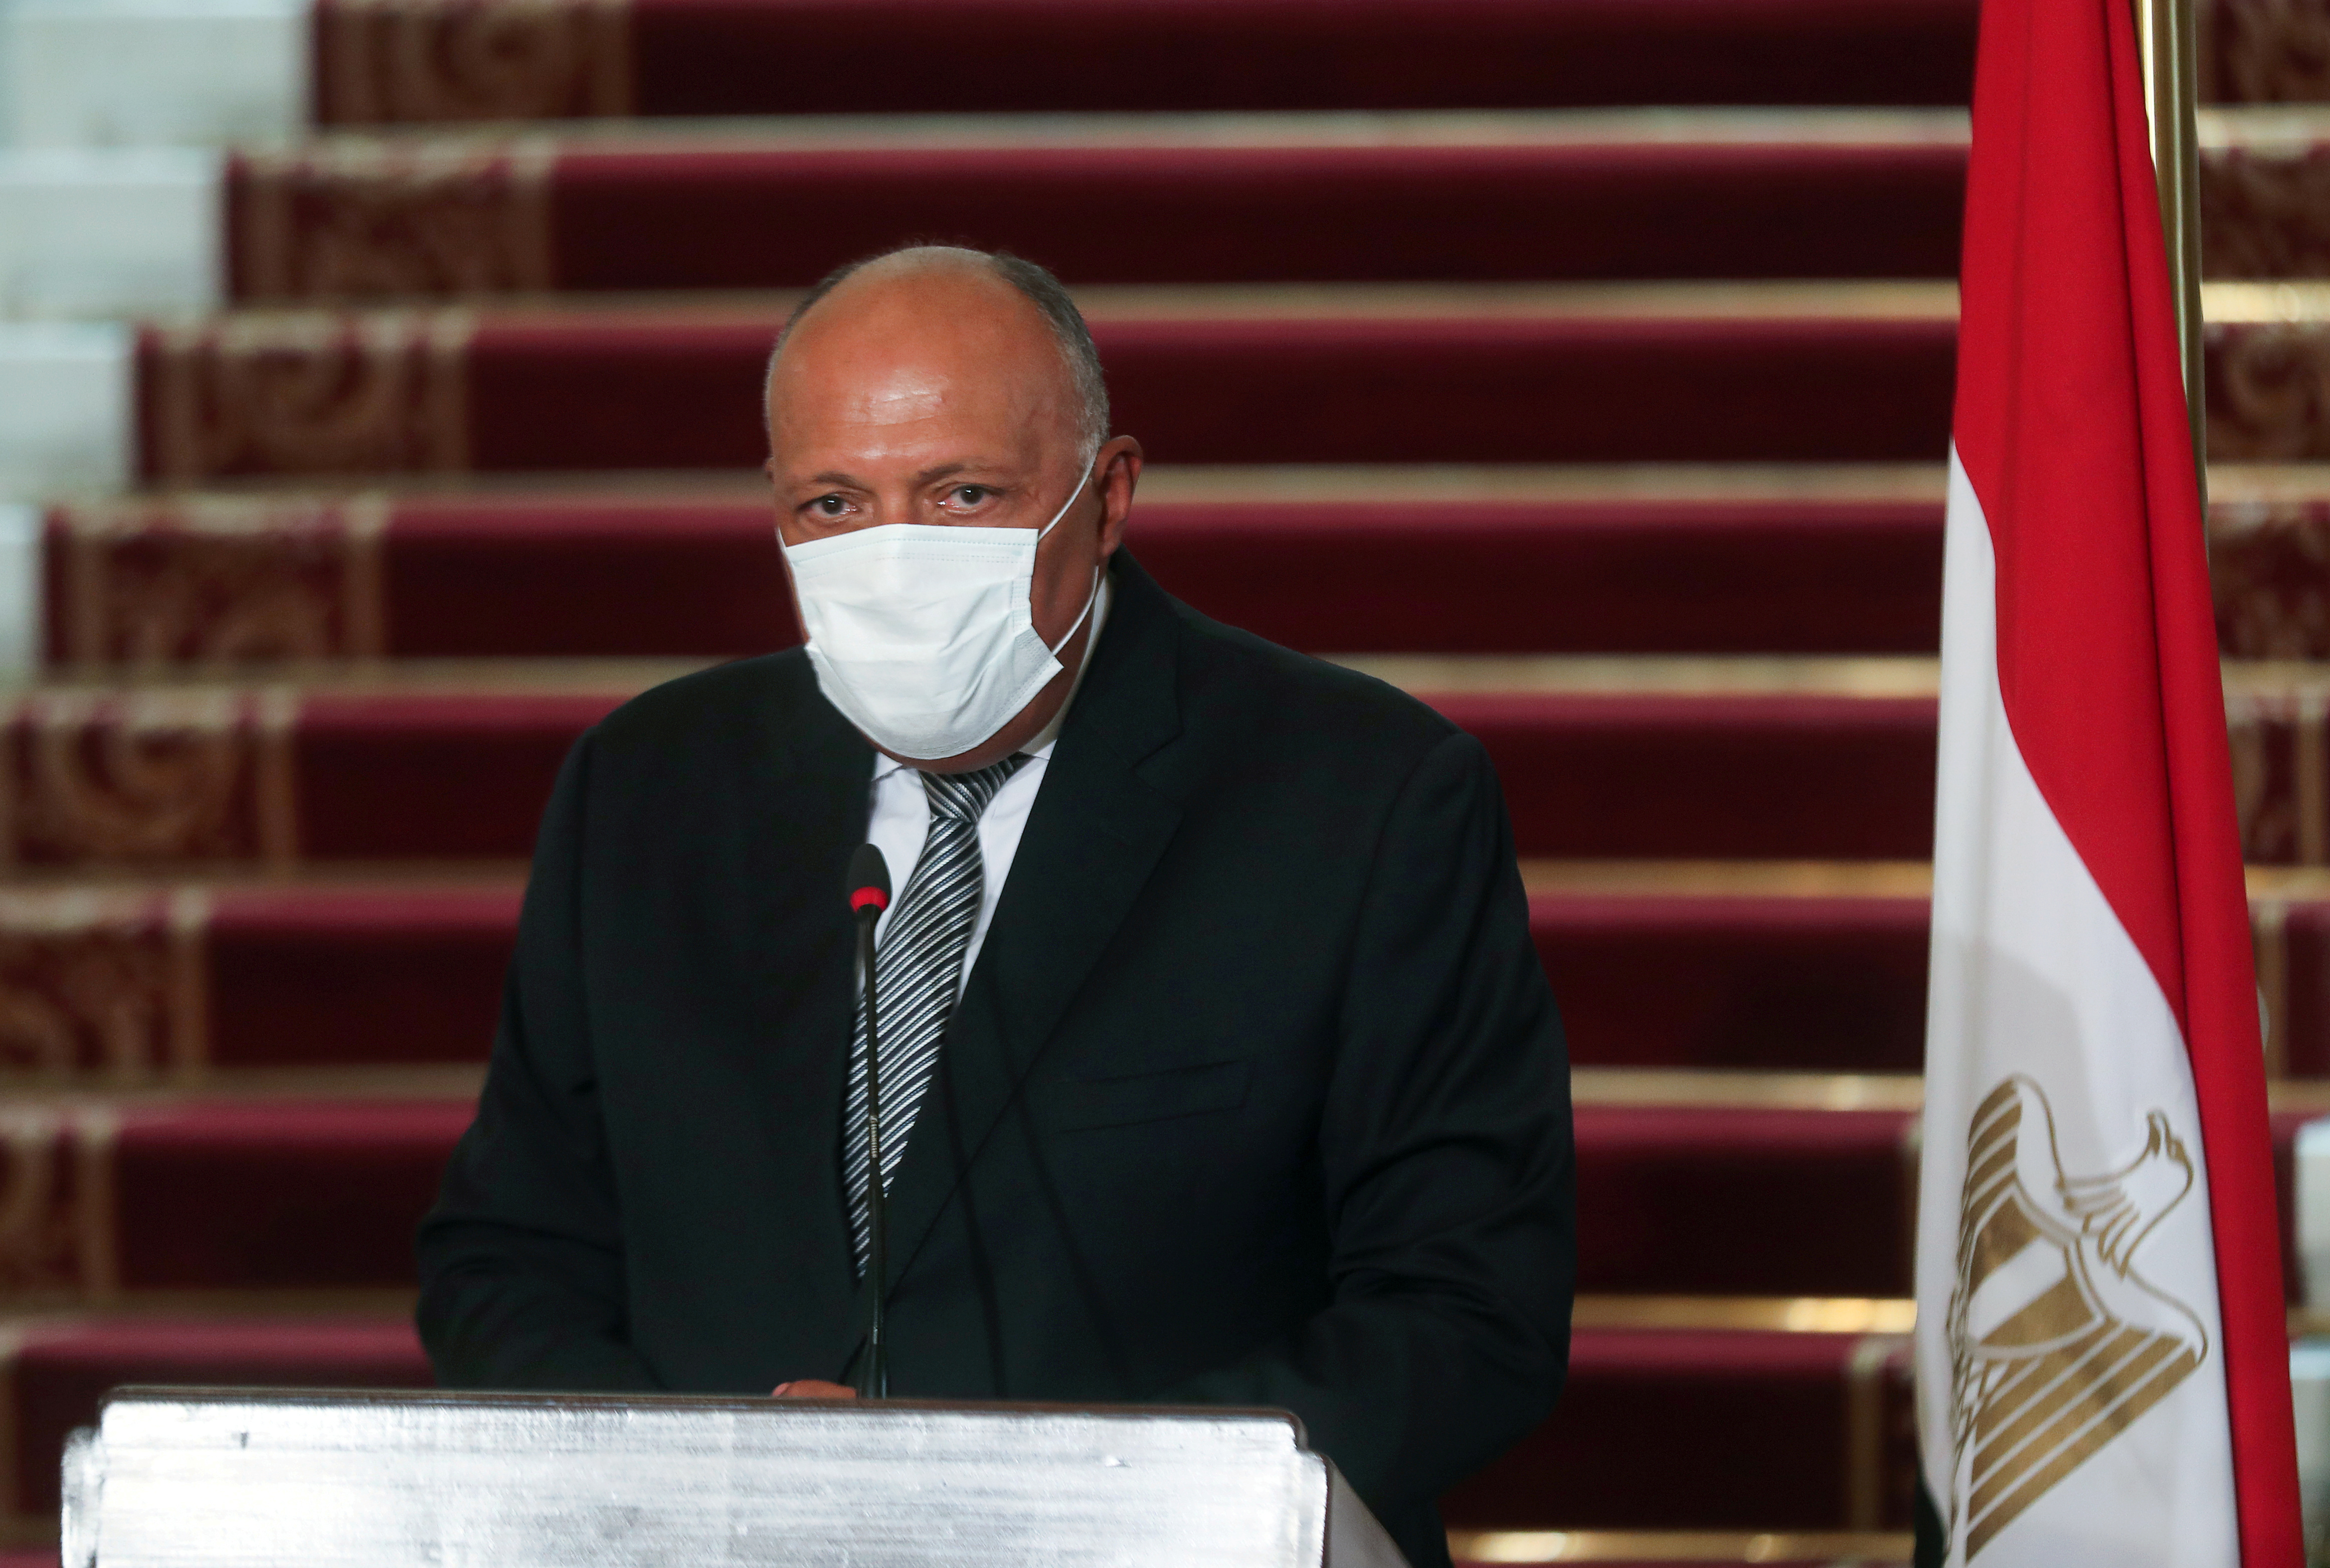 Egyptian Foreign Minister Sameh Shoukry attends a news conference after the meeting with Saudi Foreign Minister Prince Faisal bin Farhan al-Saud at Tahrir Palace in Cairo, Egypt July 27, 2020. REUTERS/Mohamed Abd El Ghany/File Photo